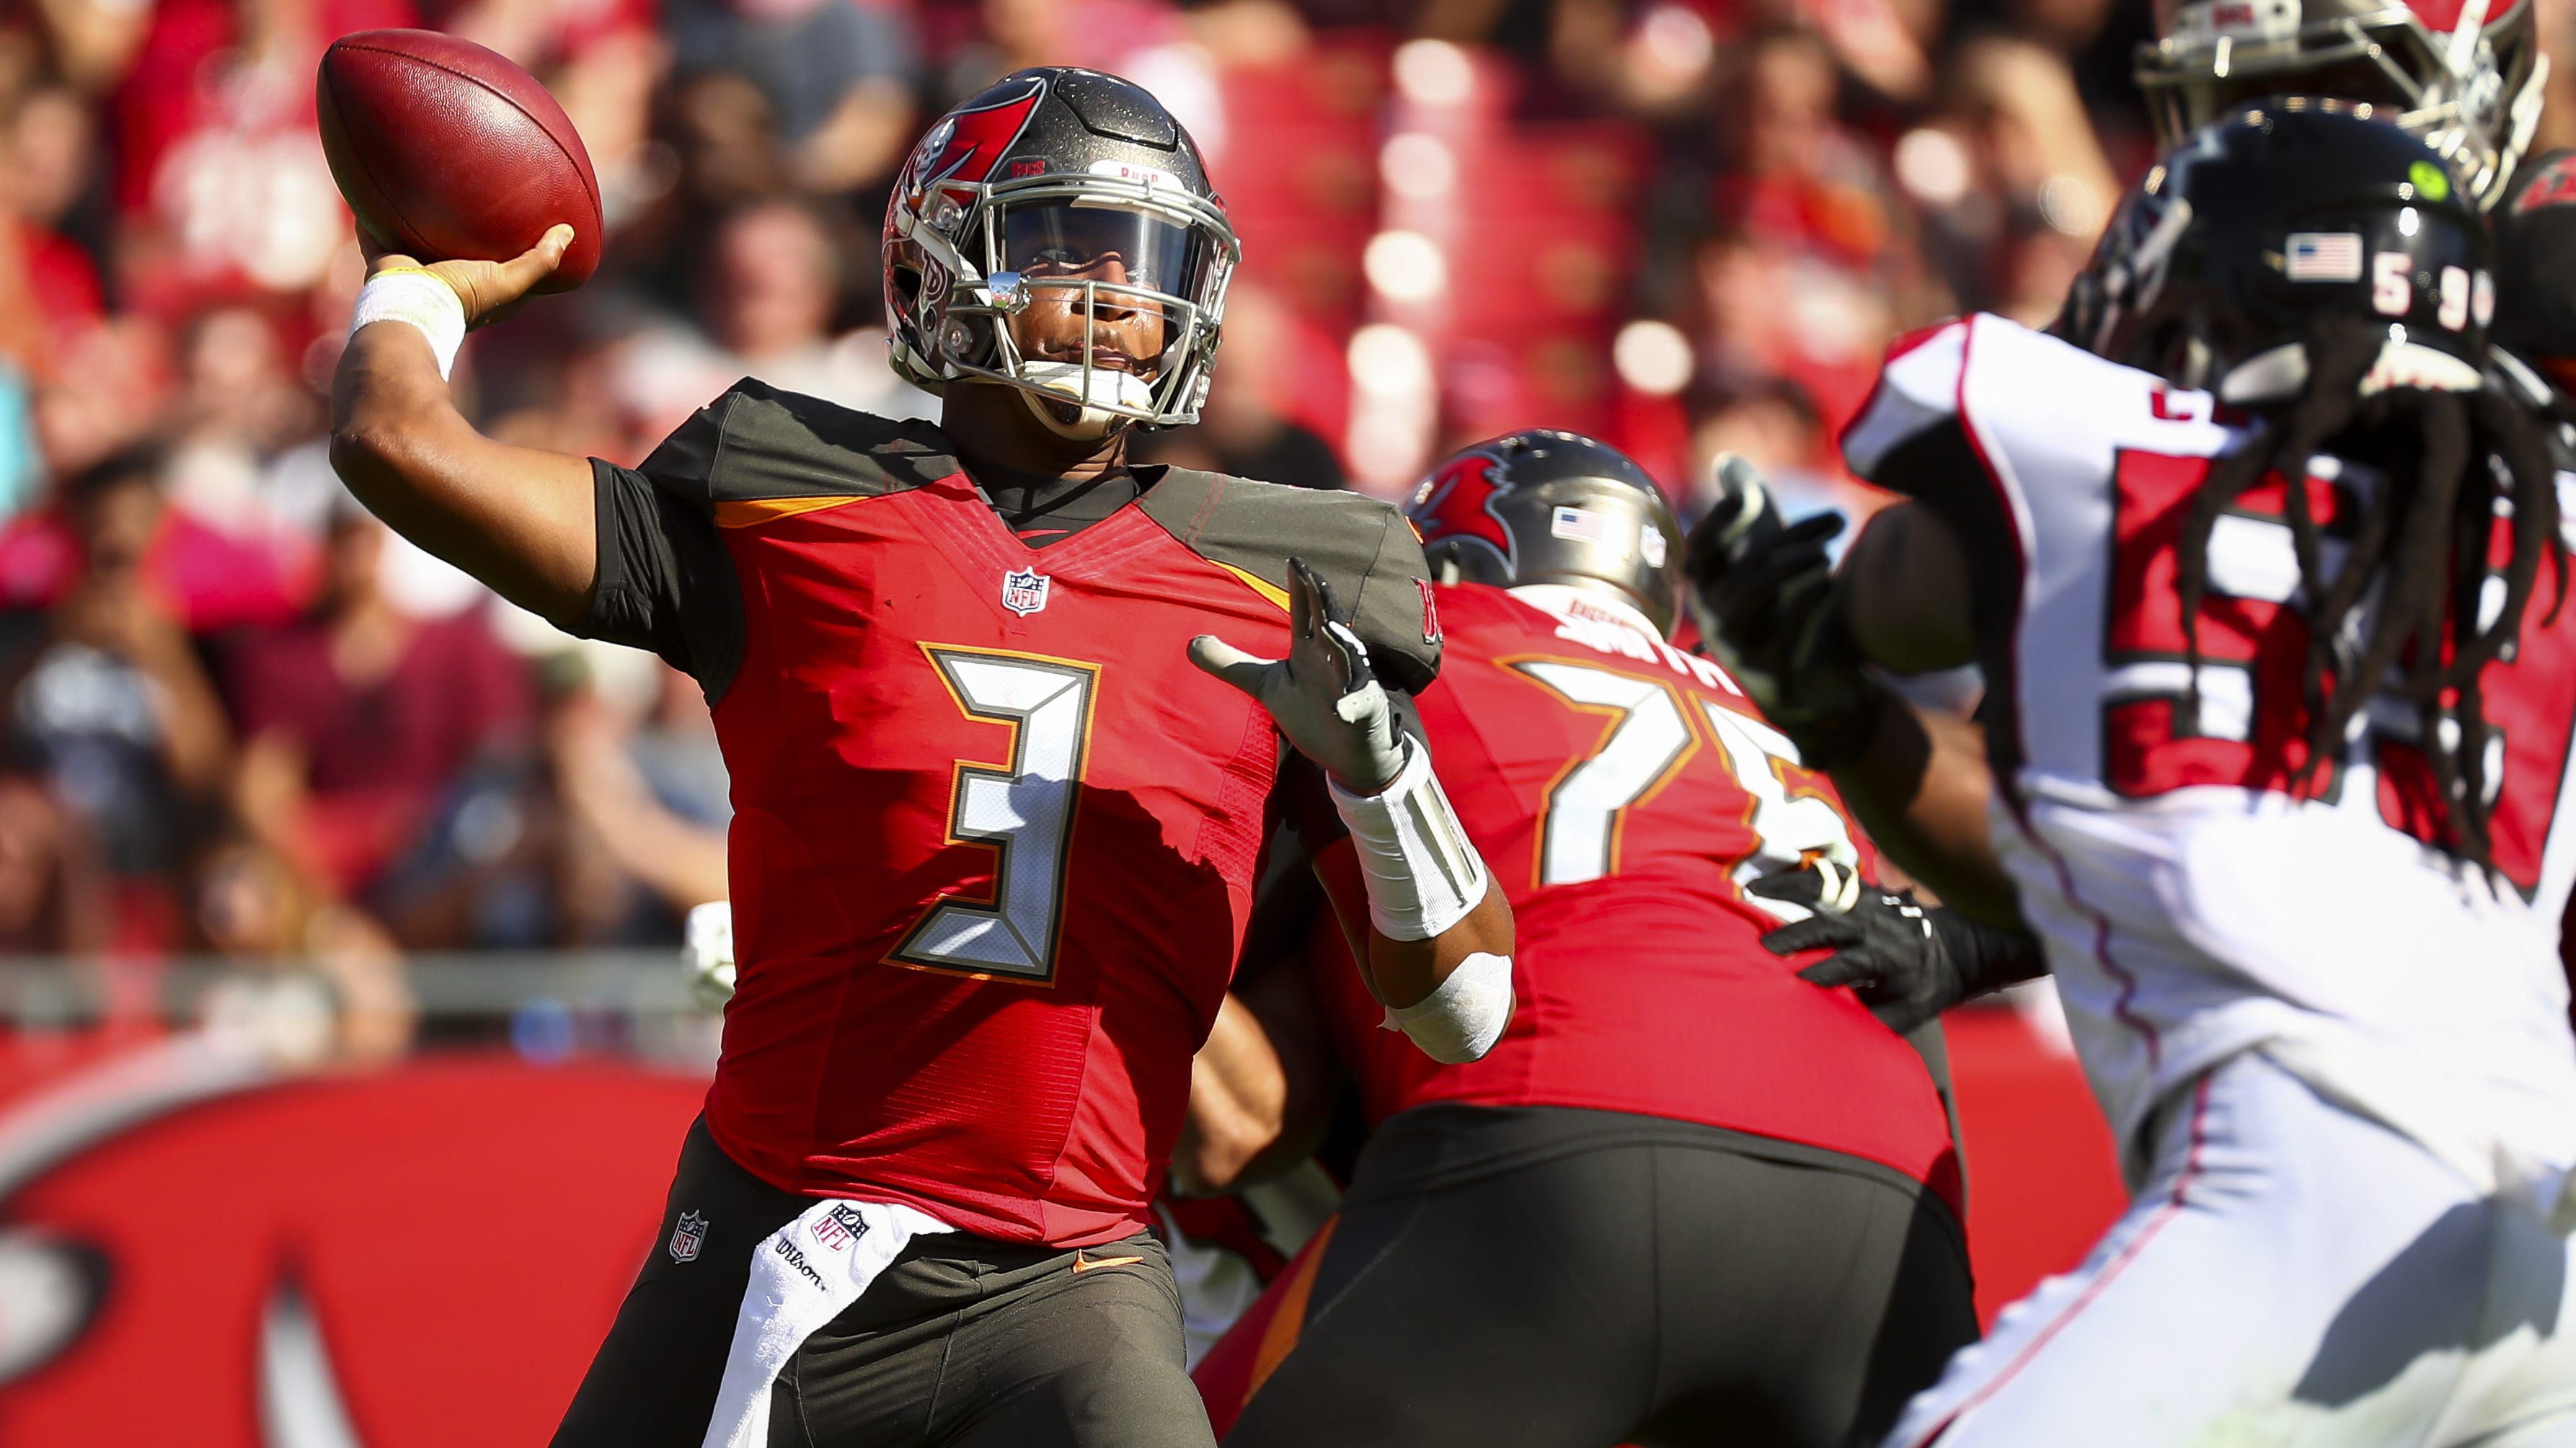 TAMPA, FL - DECEMBER 30: Quarterback Jameis Winston #3 of the Tampa Bay Buccaneers passes to wide receiver Chris Godwin #12 (not in frame)  in the second quarter of the game at Raymond James Stadium on December 30, 2018 in Tampa, Florida. (Photo by Will Vragovic/Getty Images)